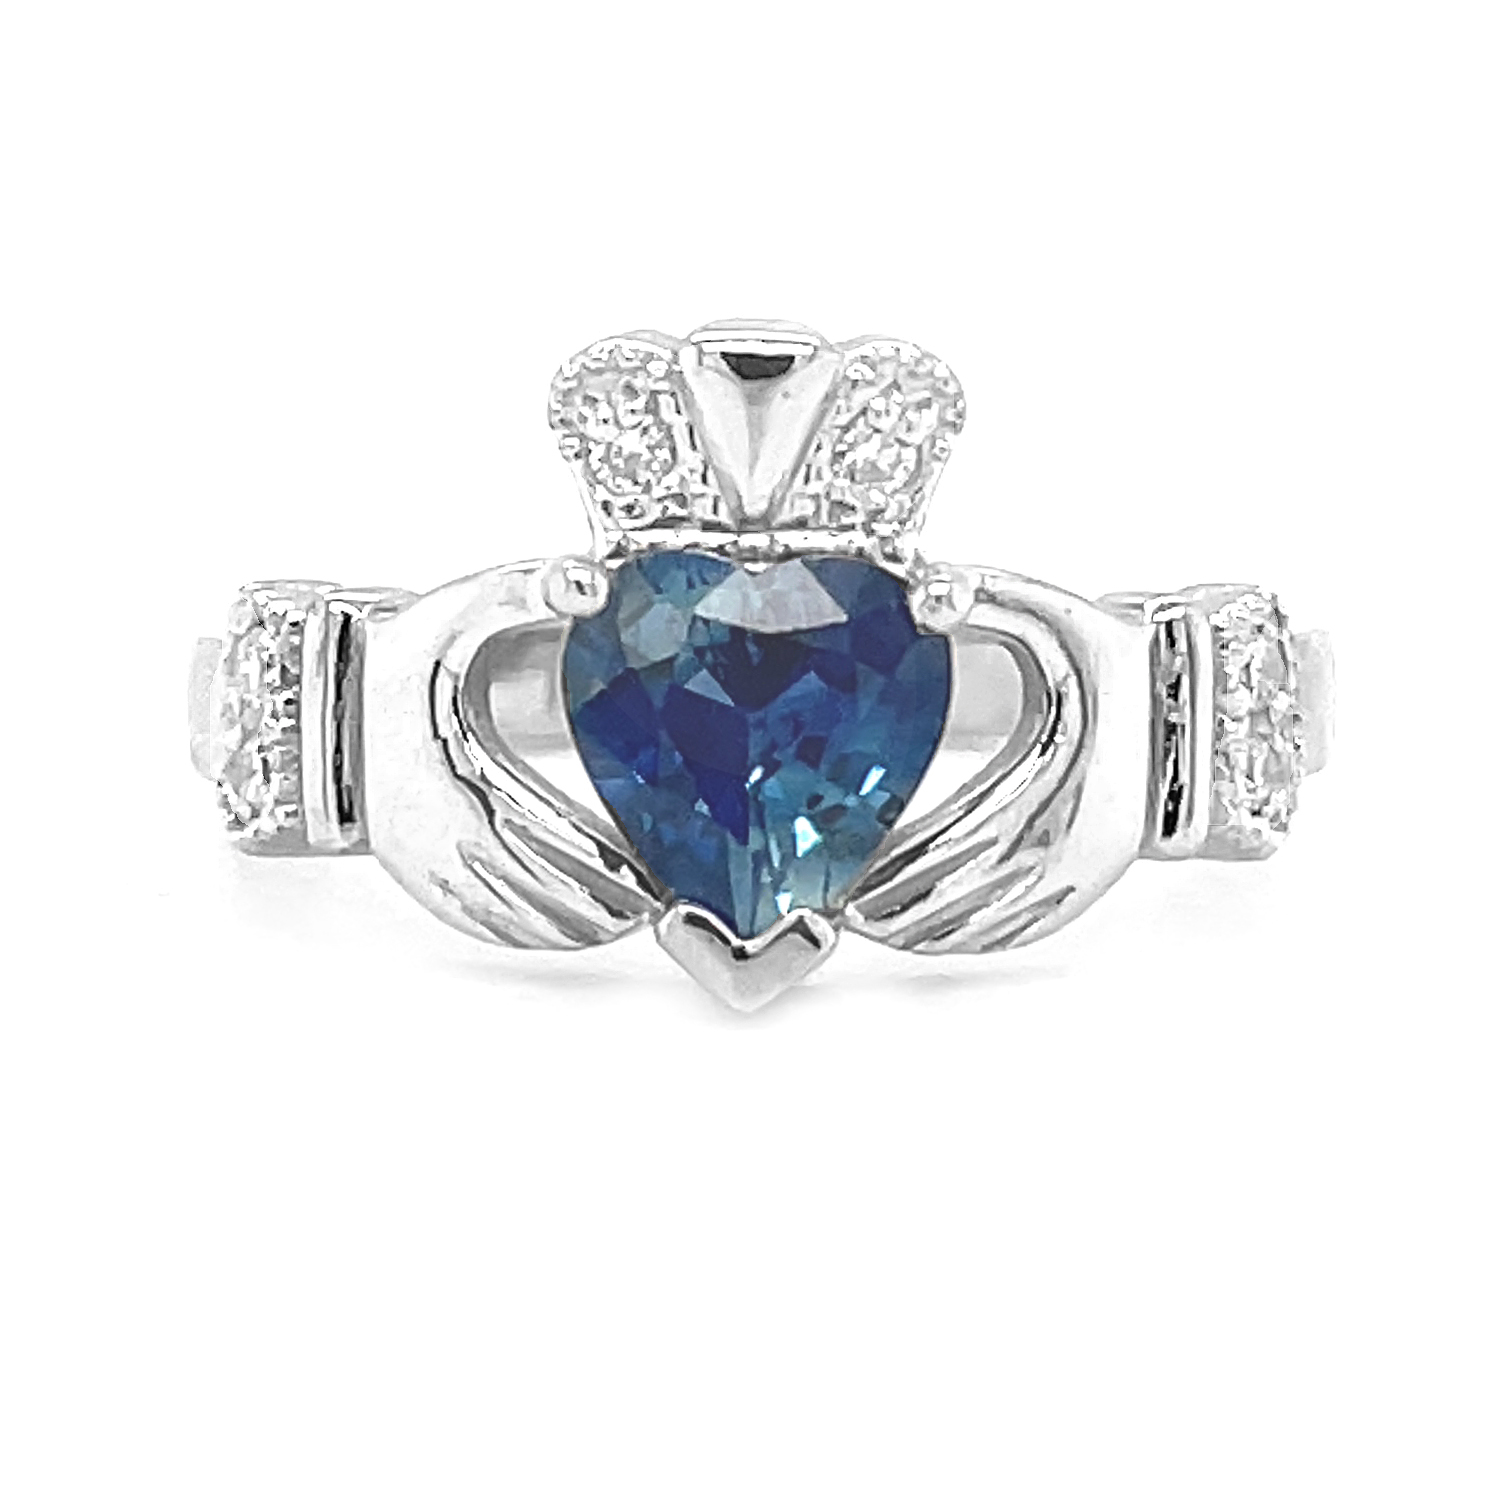 14k White Gold, 1.34cts Sapphire Claddagh Engagement Ring